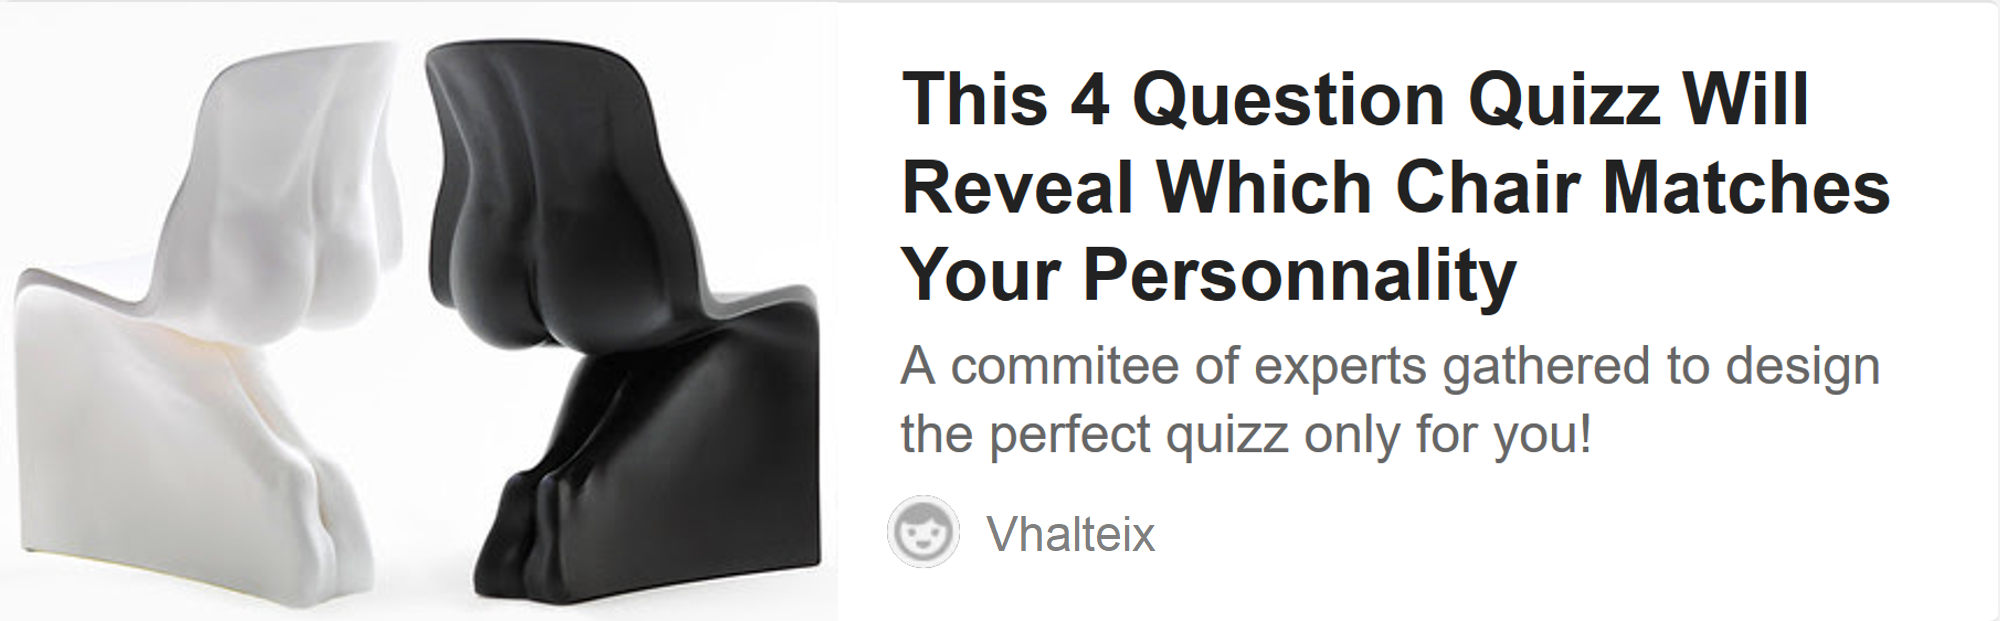 This 4 Question Quizz Will Reveal Which Chair Matches Your Personnality